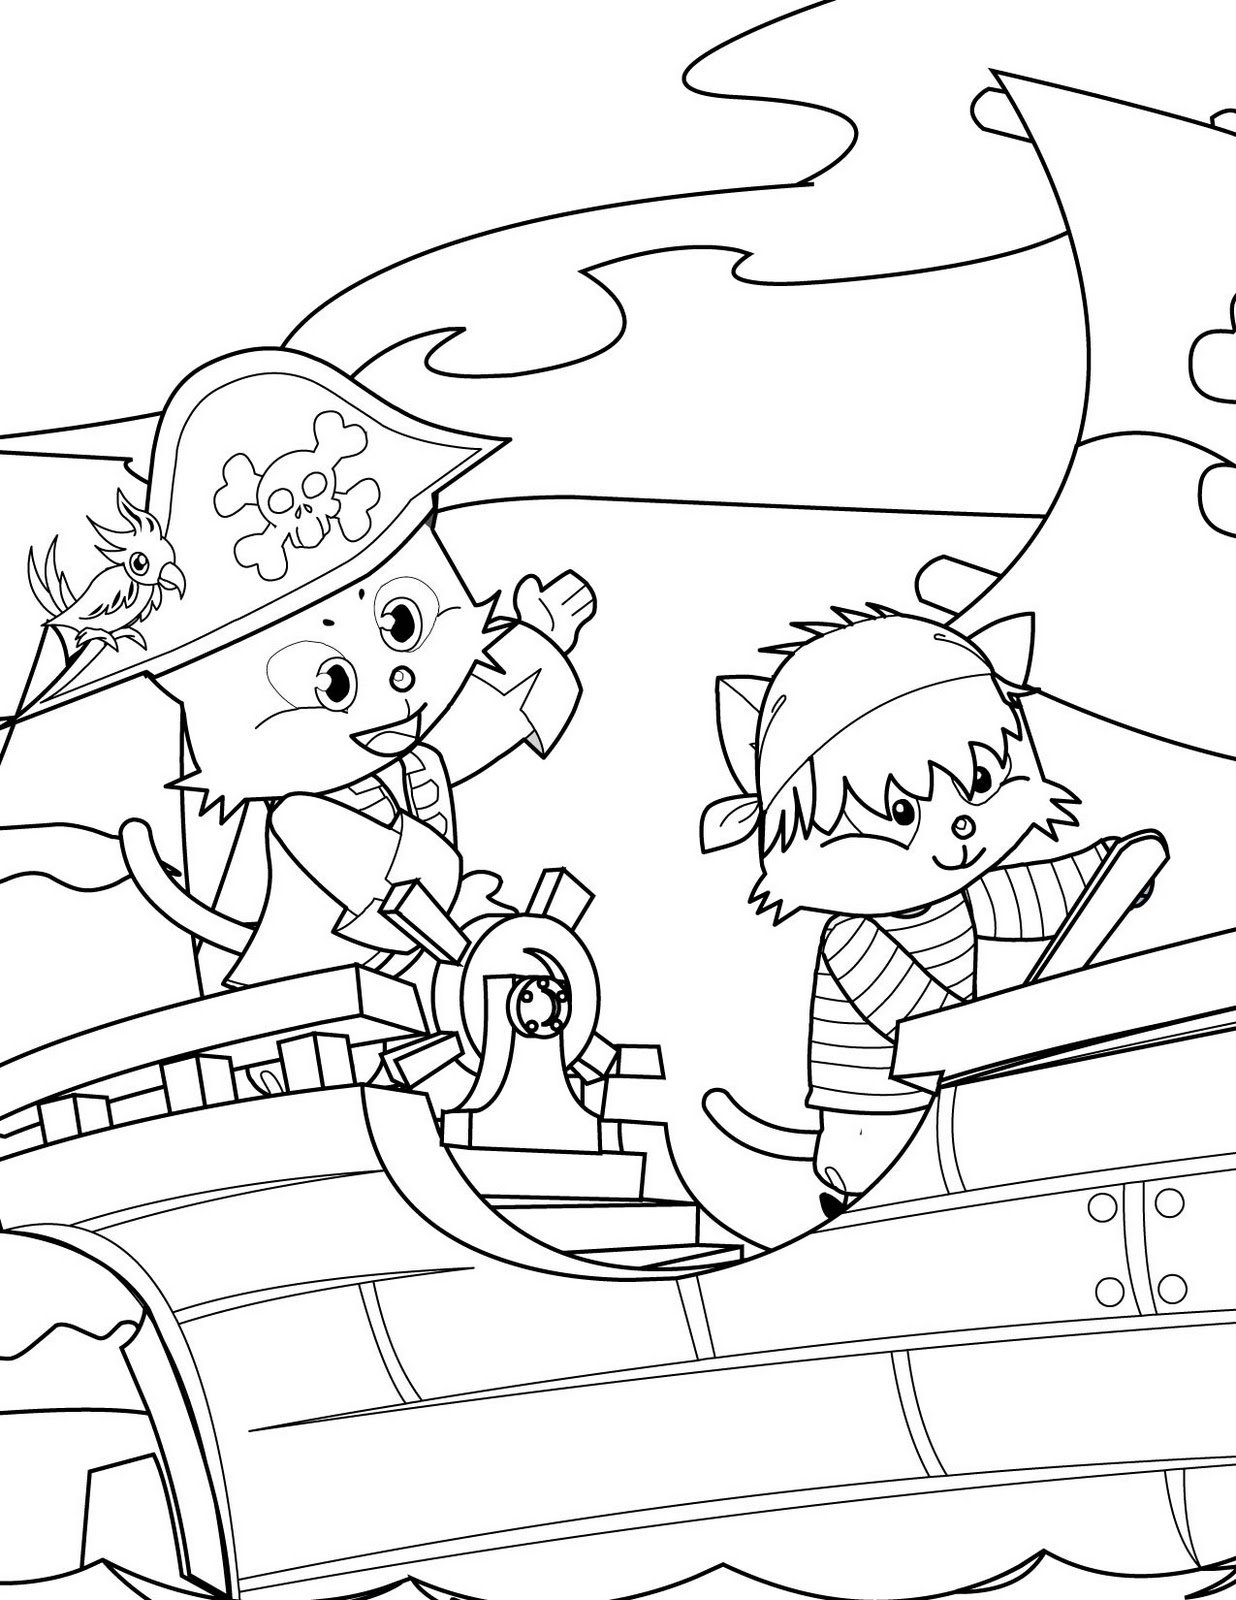 pirate coloring pages pirates caribbean coloring pages pirates of the pages coloring pirate